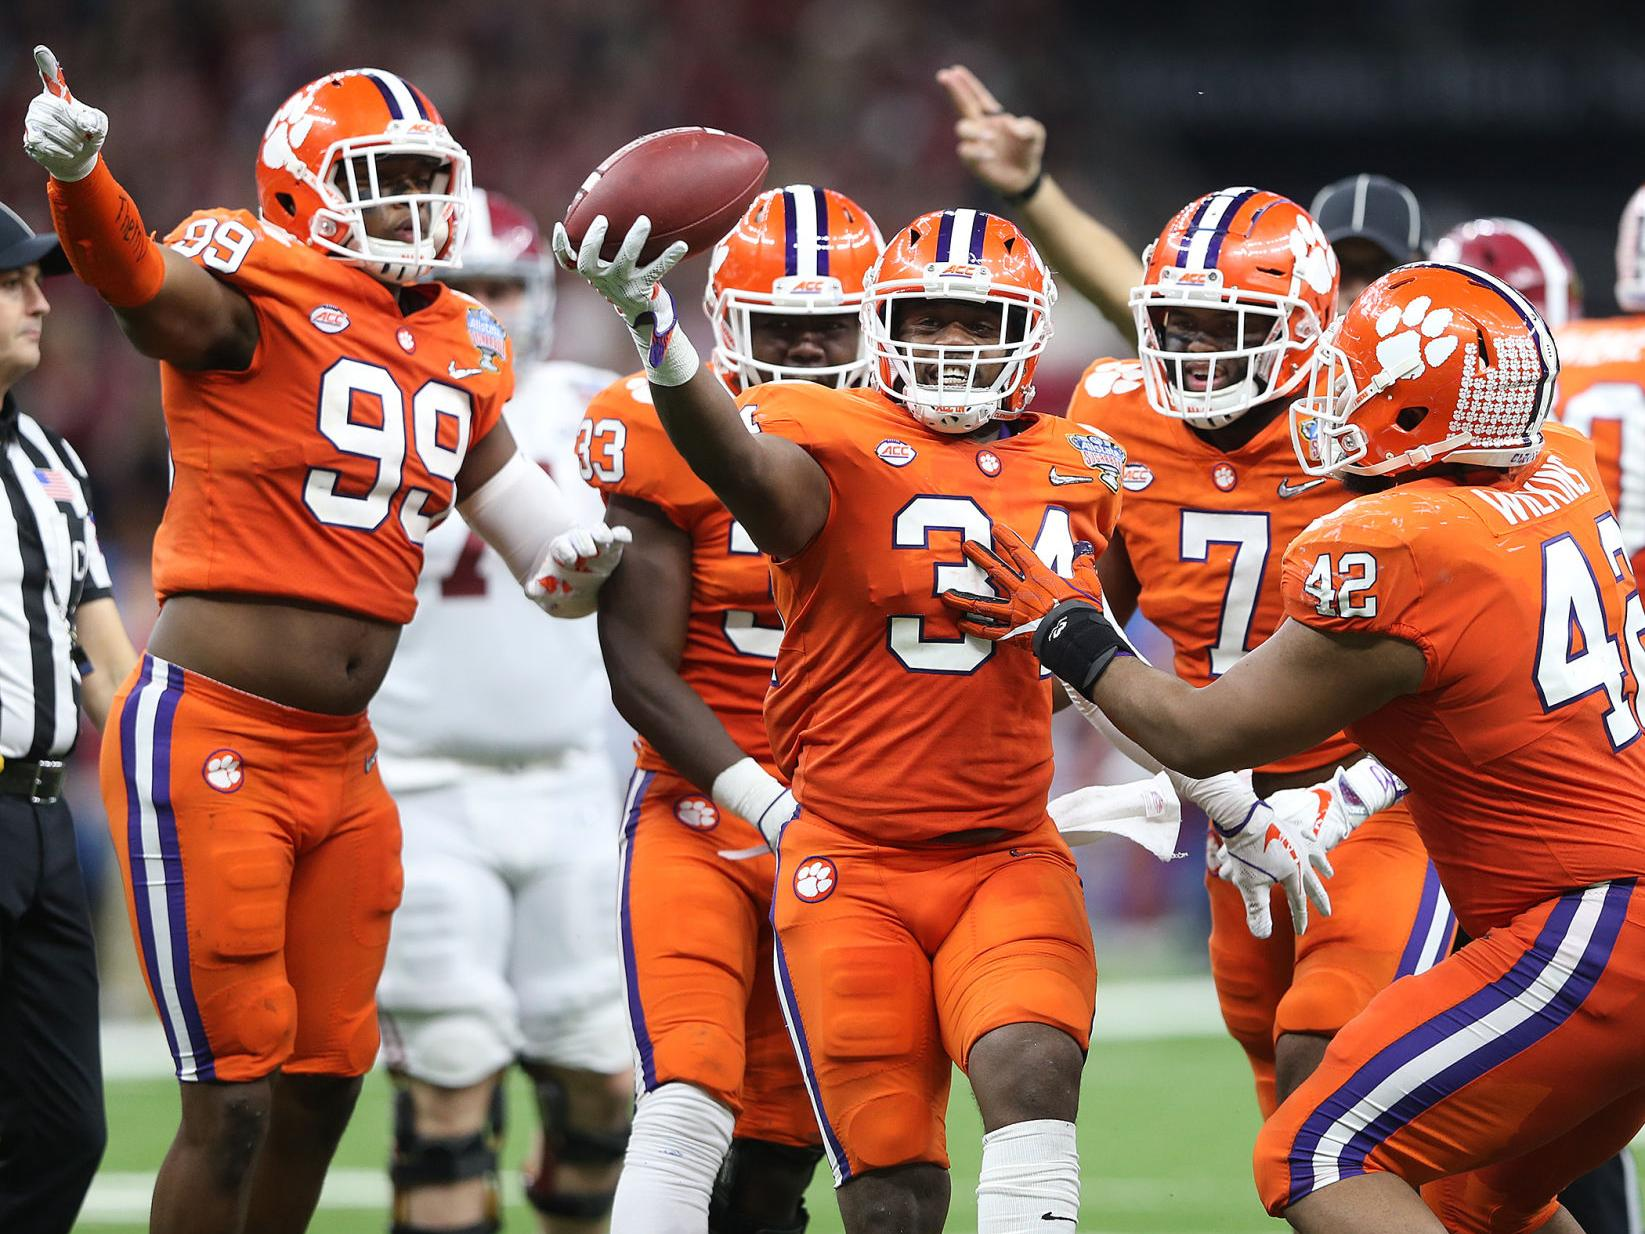 Howard S Rock Iptay The Fridge Get To Know These 10 Things About Clemson Football Lsu Theadvocate Com